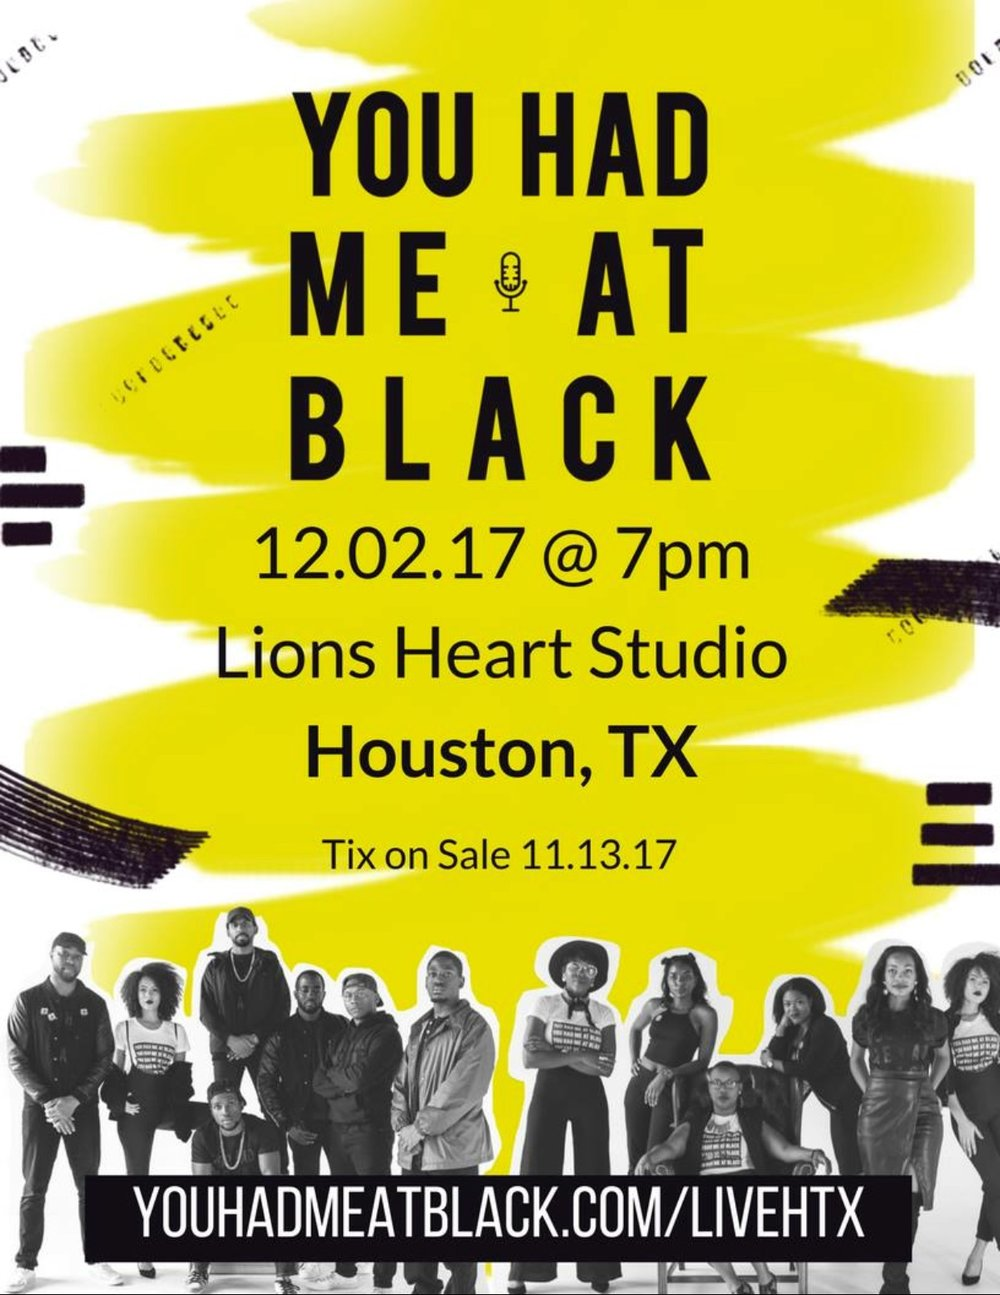 You Had Me at Black is a storytelling kickback series and podcast for people who simply love being black. We have one mission: to reclaim the Black narrative through storytelling, community, and turning up.  Join us as we touch down for the first time in Houston. Expect memorable stories, drinks, good music, great people. Expect vibes.  PURCHASE TICKETS:  WWW.YOUHADMEATBLACK.COM/LIVEHTX   //Doors open @ 7pm, story time @ 8pm //Seating is first come, first served //Drink tickets must be purchased in advance //21+ only